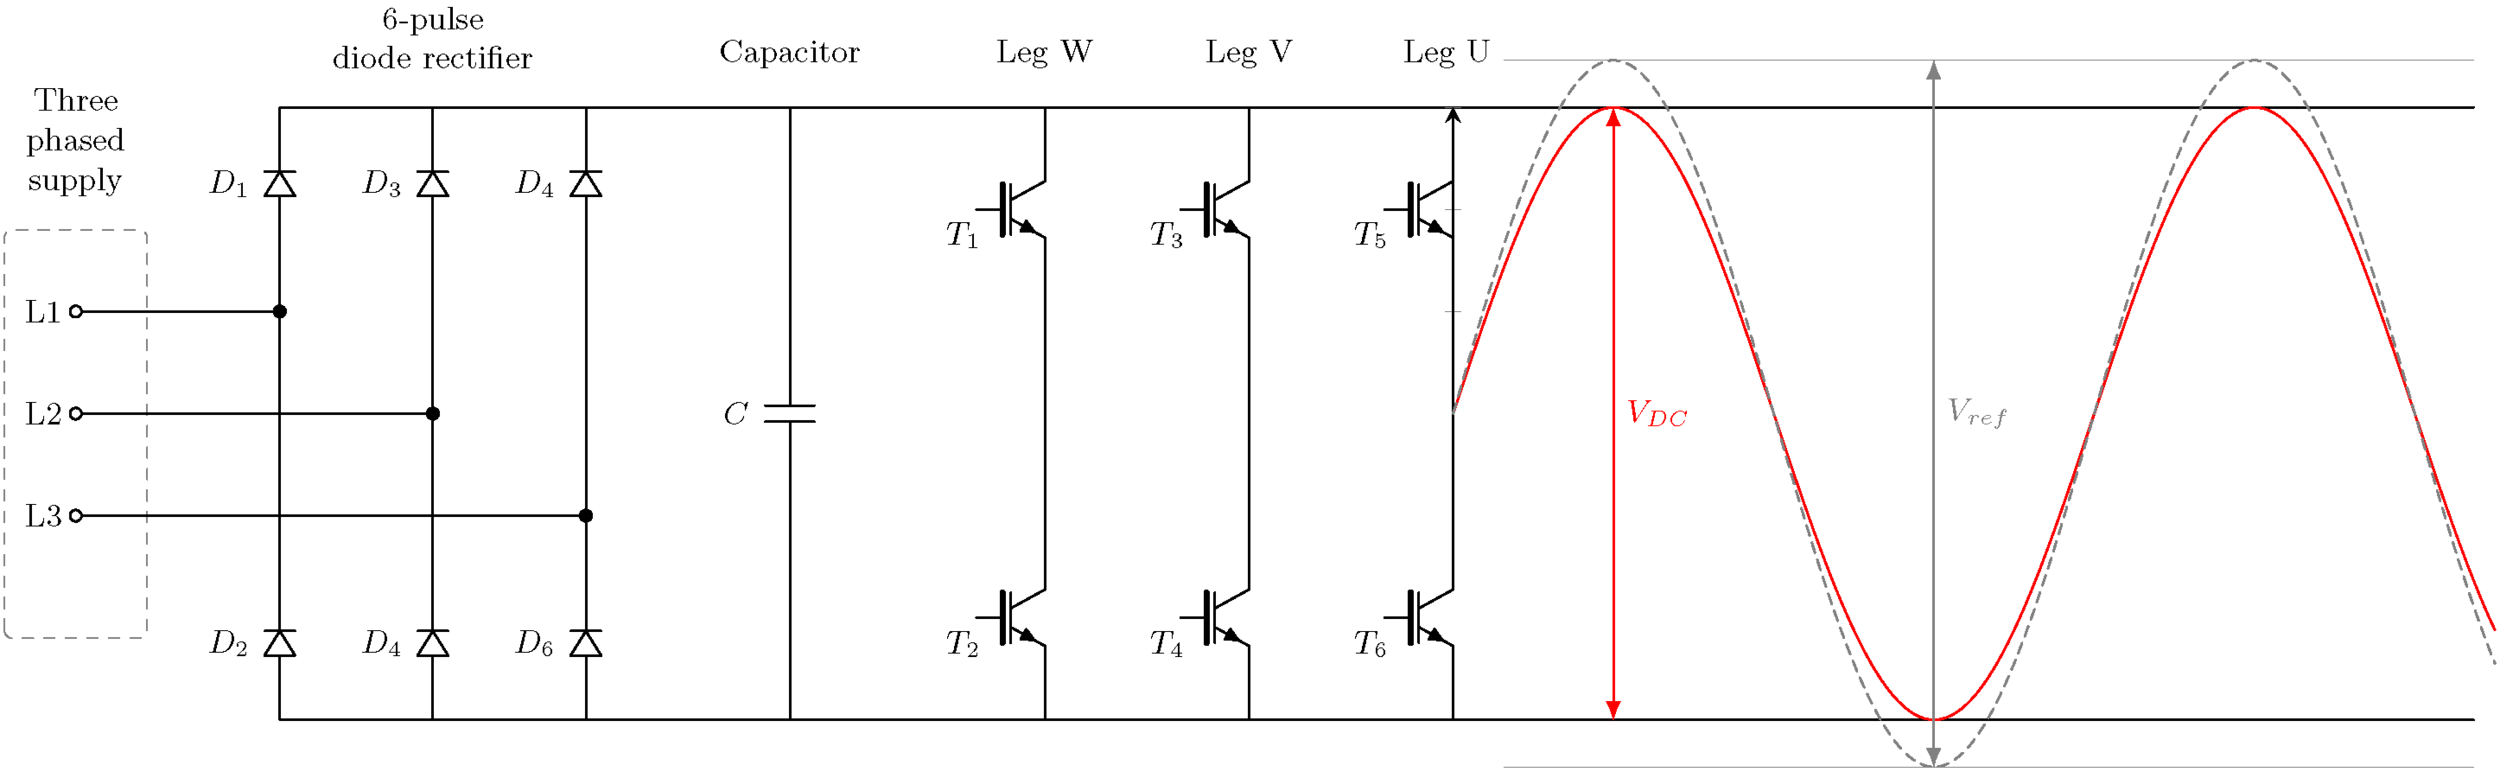 A standard two-level inverter shown with its maximum output voltage waveform in red. The dashed curve represent the desired voltage, i.e. same amplitude as the input rms voltage.